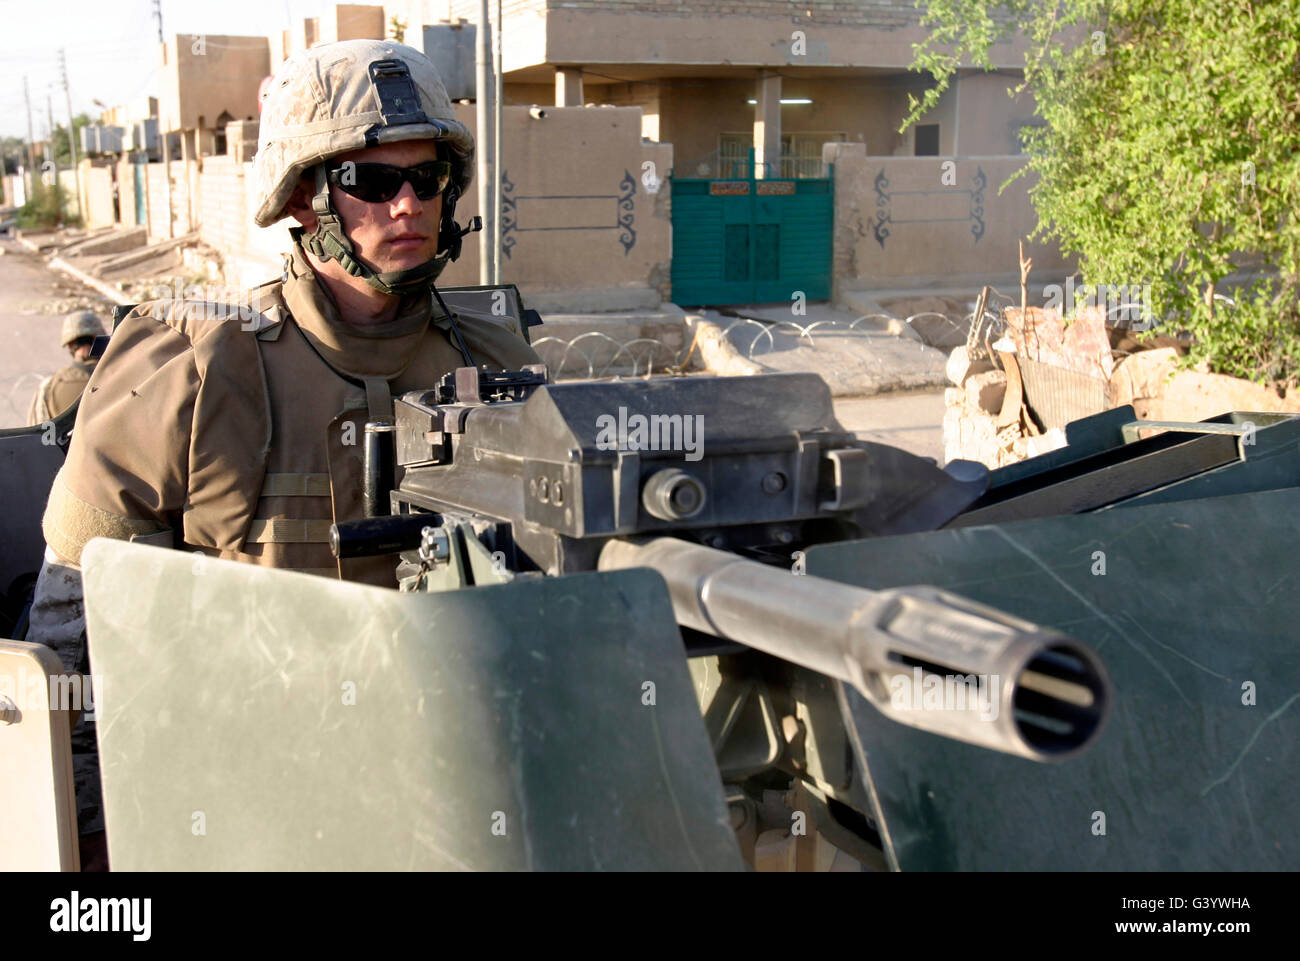 A machine gunner mans his MK-19 automatic grenade launcher. - Stock Image